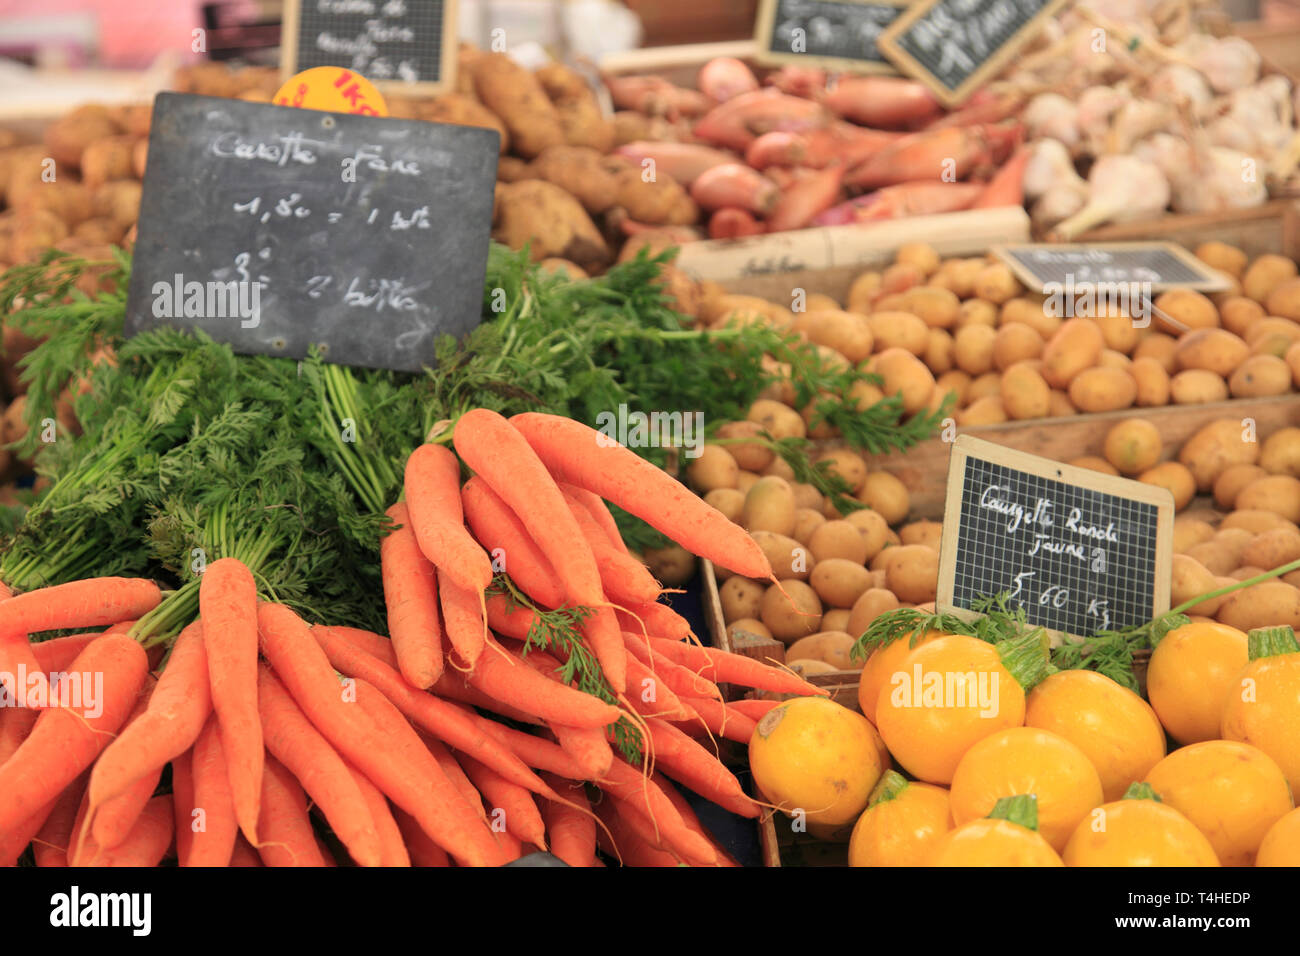 Marche Forville, Forville Market, Cannes, Alpes Maritimes, Cote d'Azur, French Riviera, Provence, France, Europe - Stock Image